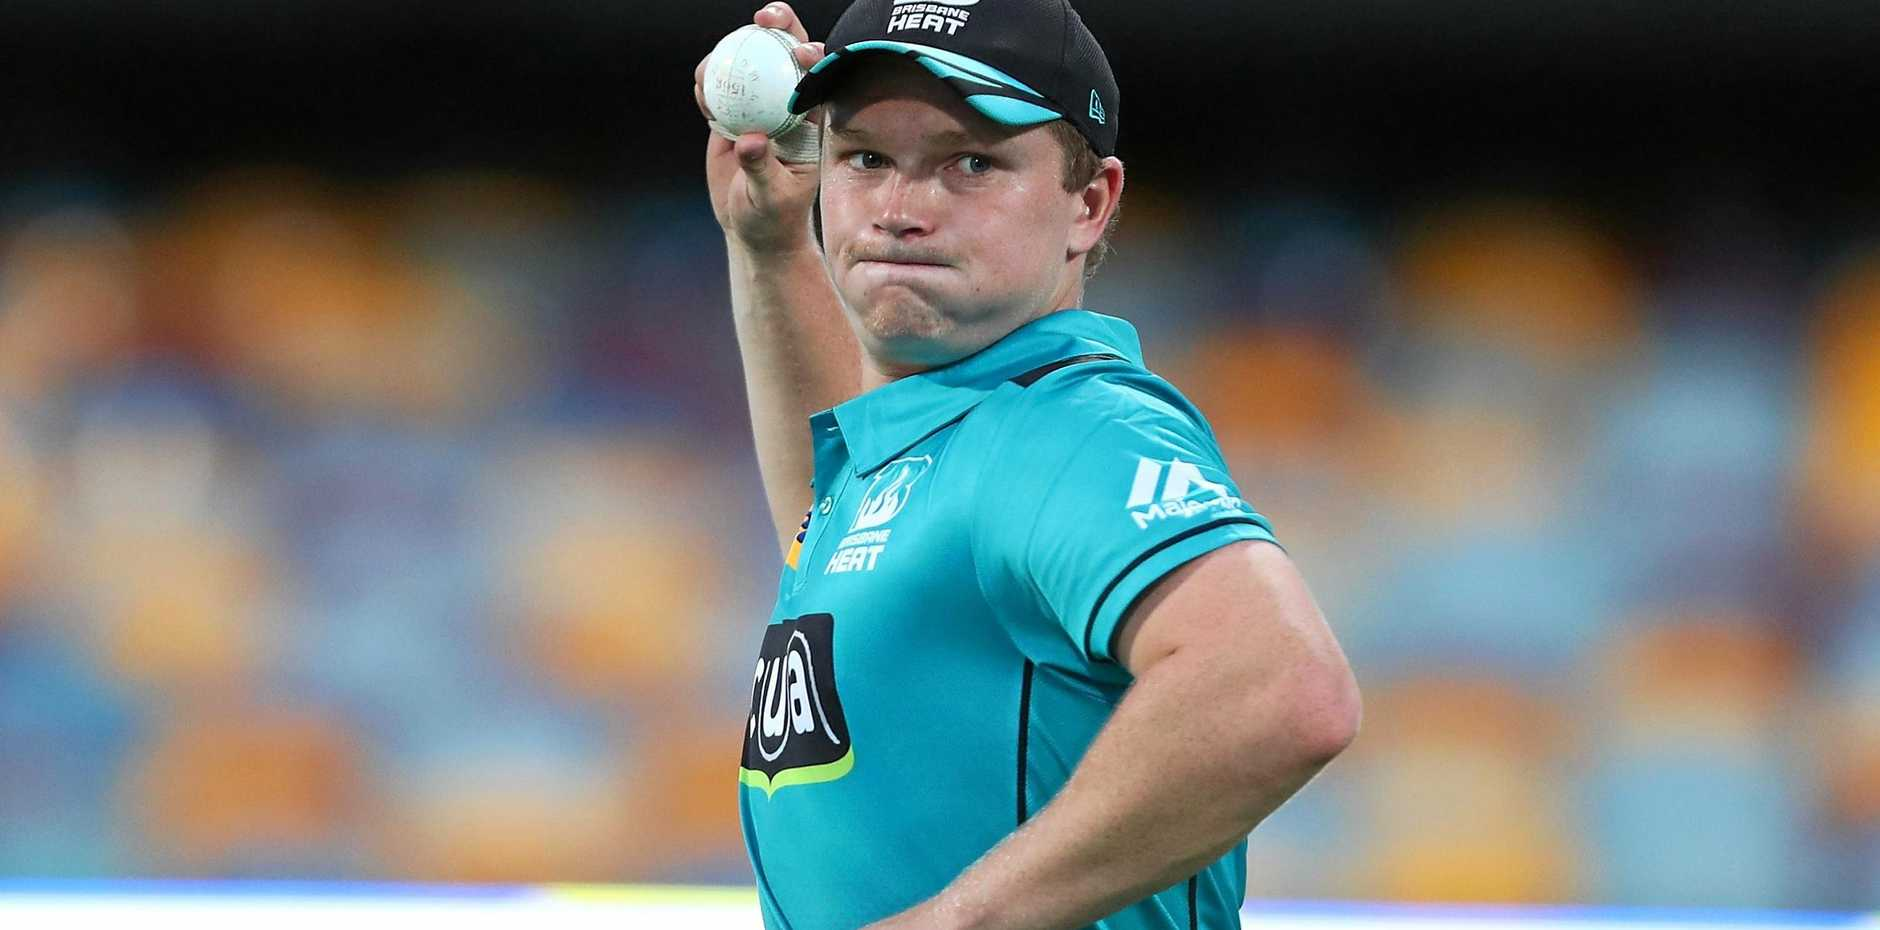 READY TO GO: Max Bryant is preparing for the Brisbane Heat Big Bash League.